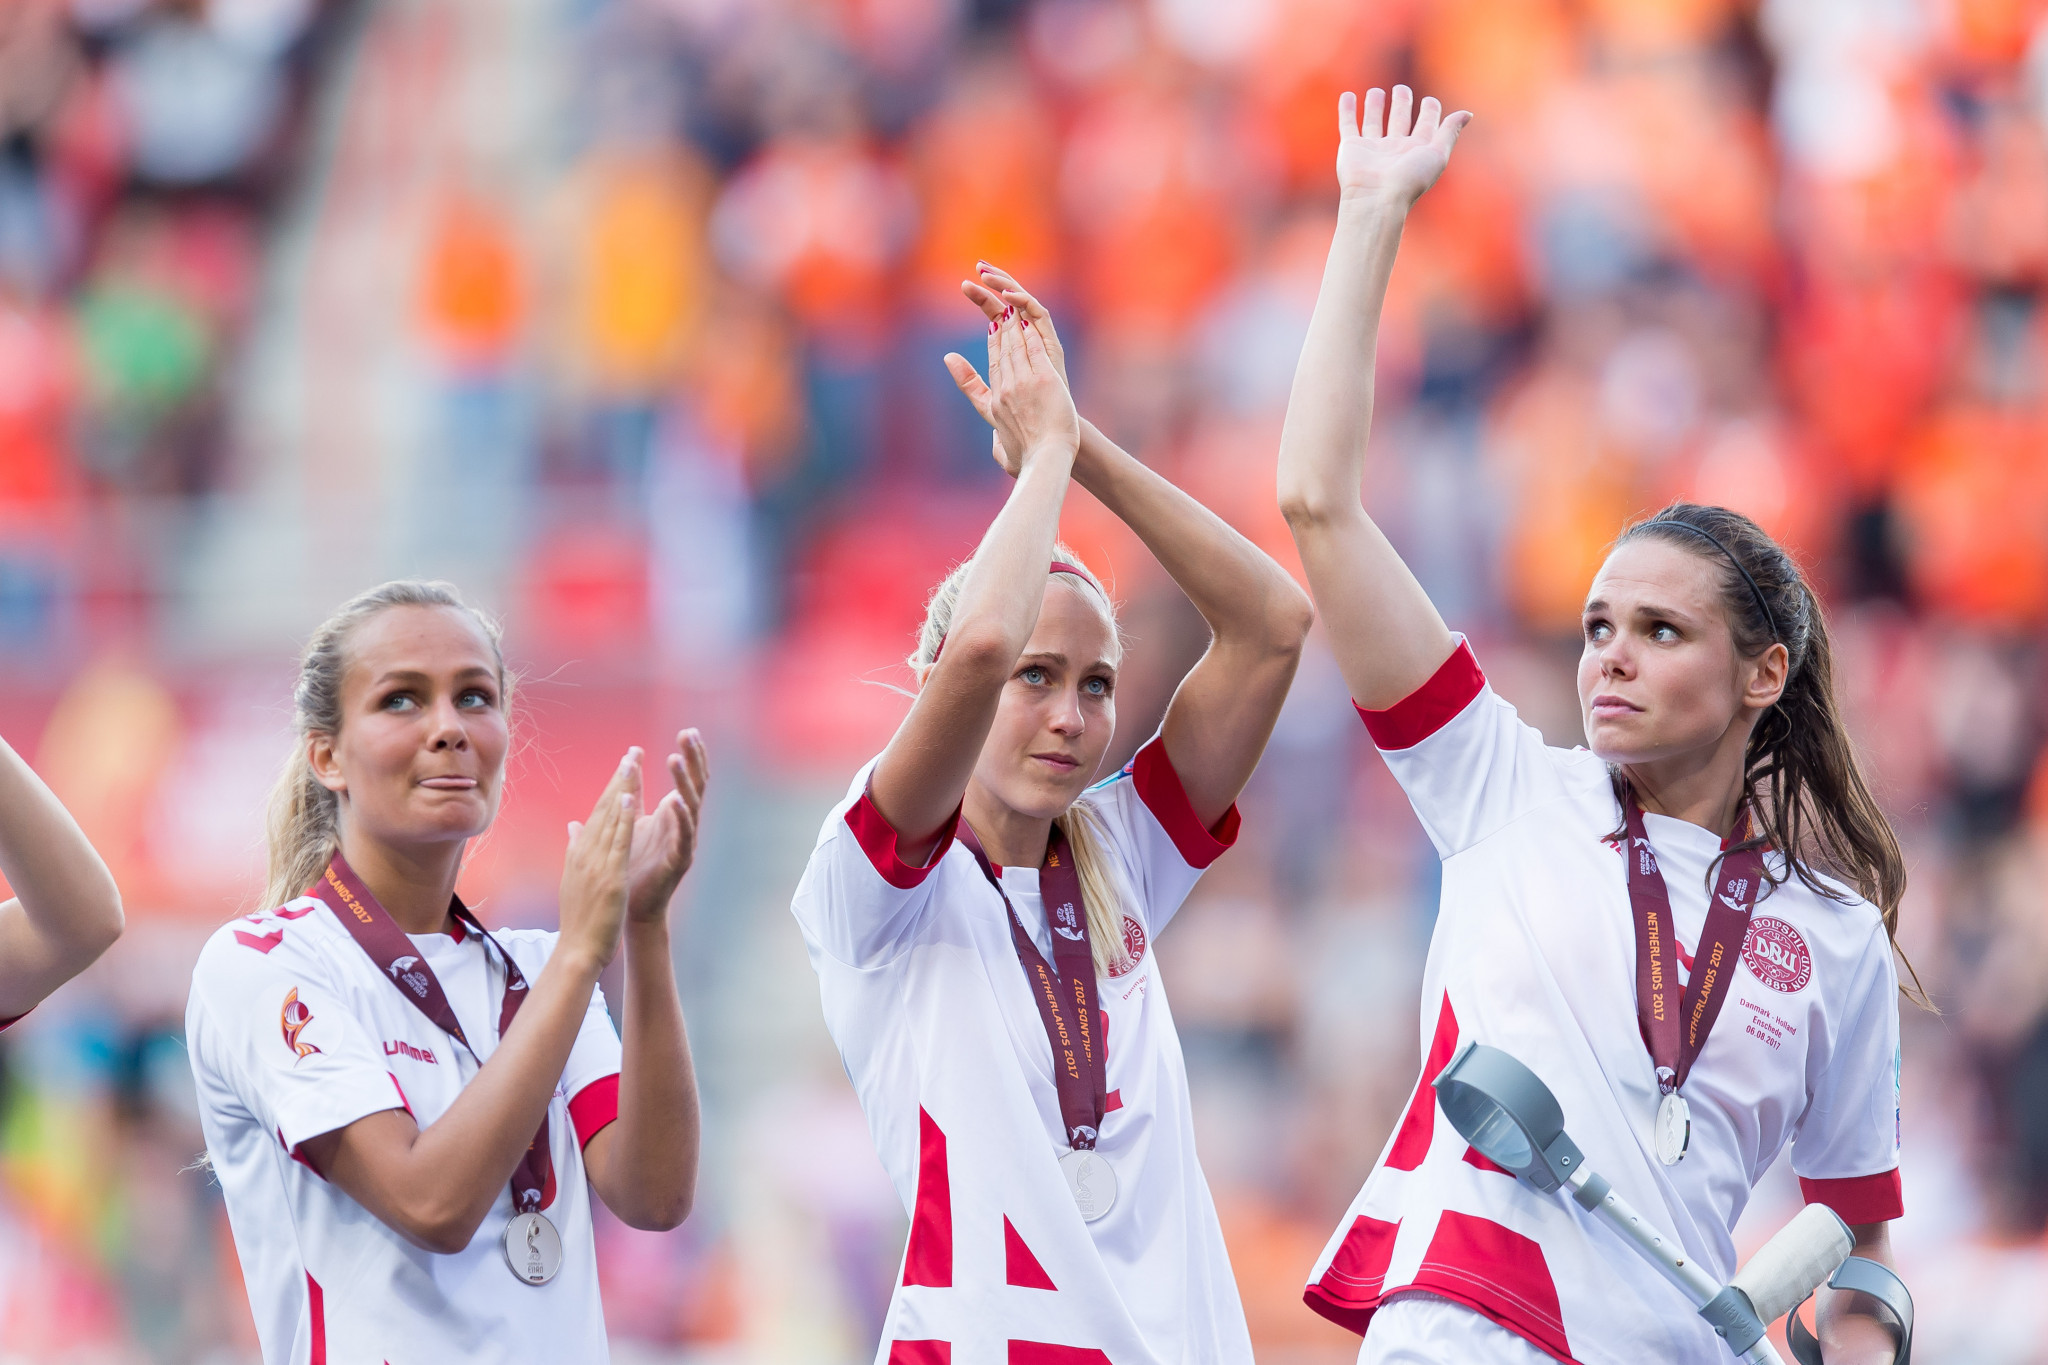 Denmark's women's team to play Croatia after agreeing partial pay resolution